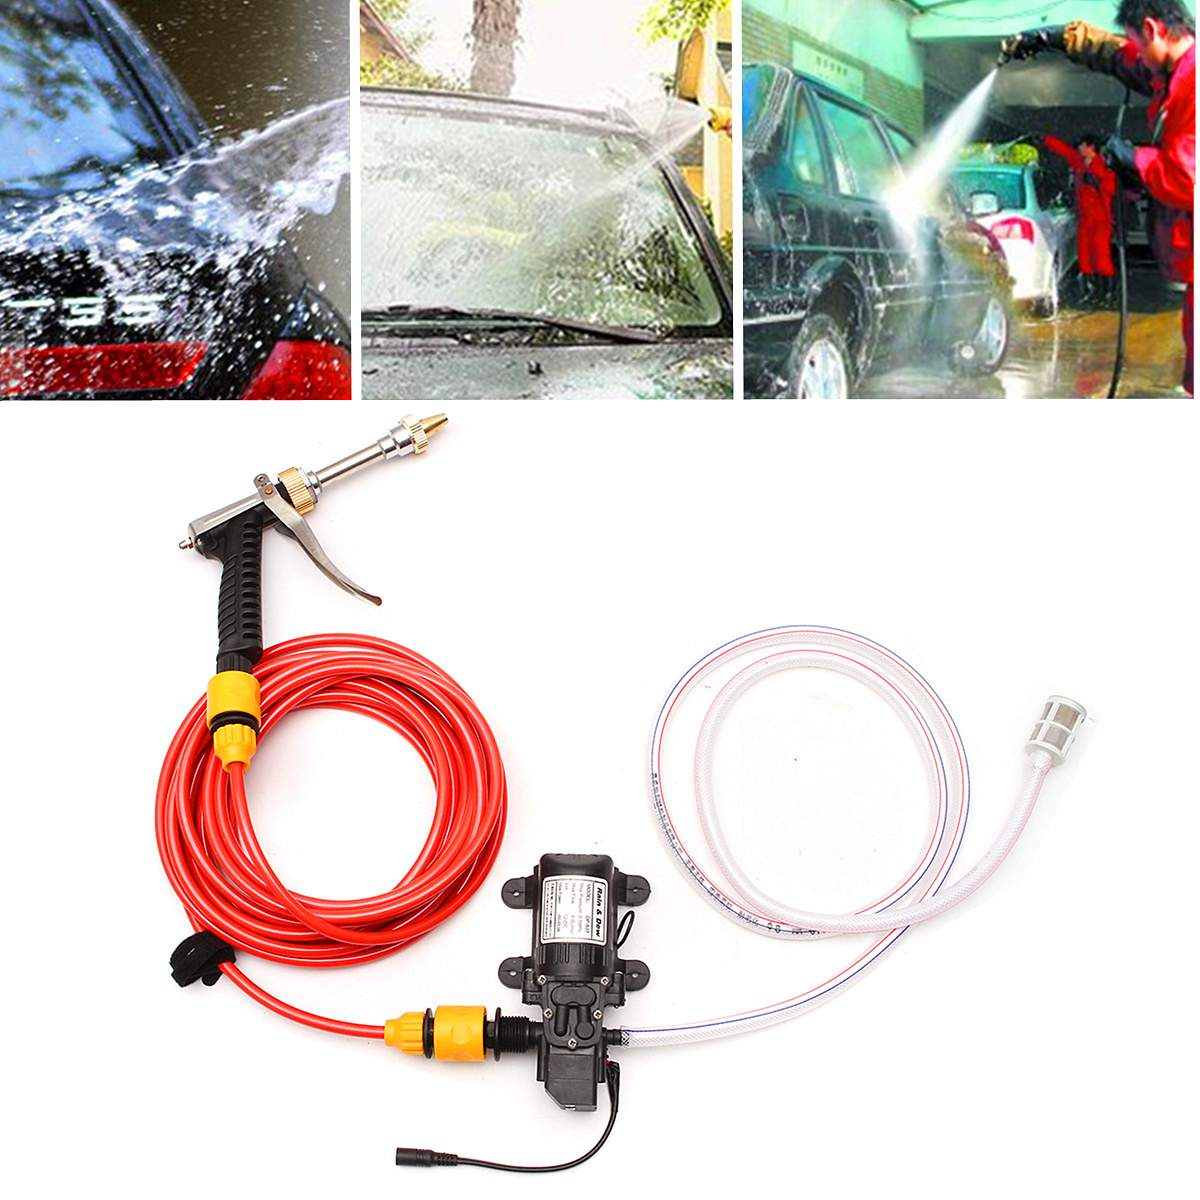 12V High Pressure Car Electric Washer Wash Pump Set Car Washer Pump Portable Auto Washing Machine Kit Car Washer Sprayer Pump